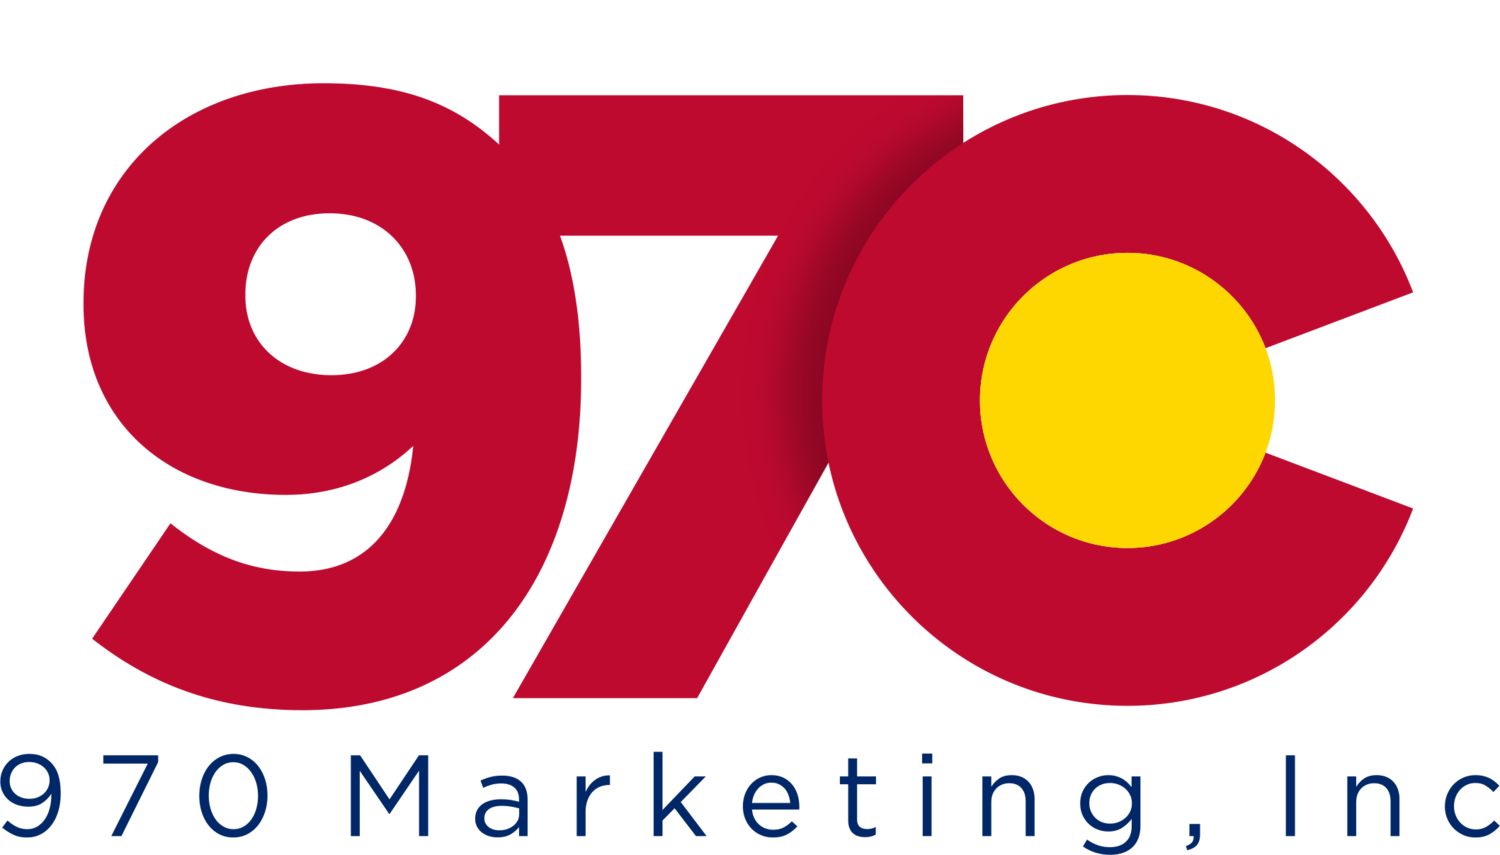 970 Marketing, Inc.